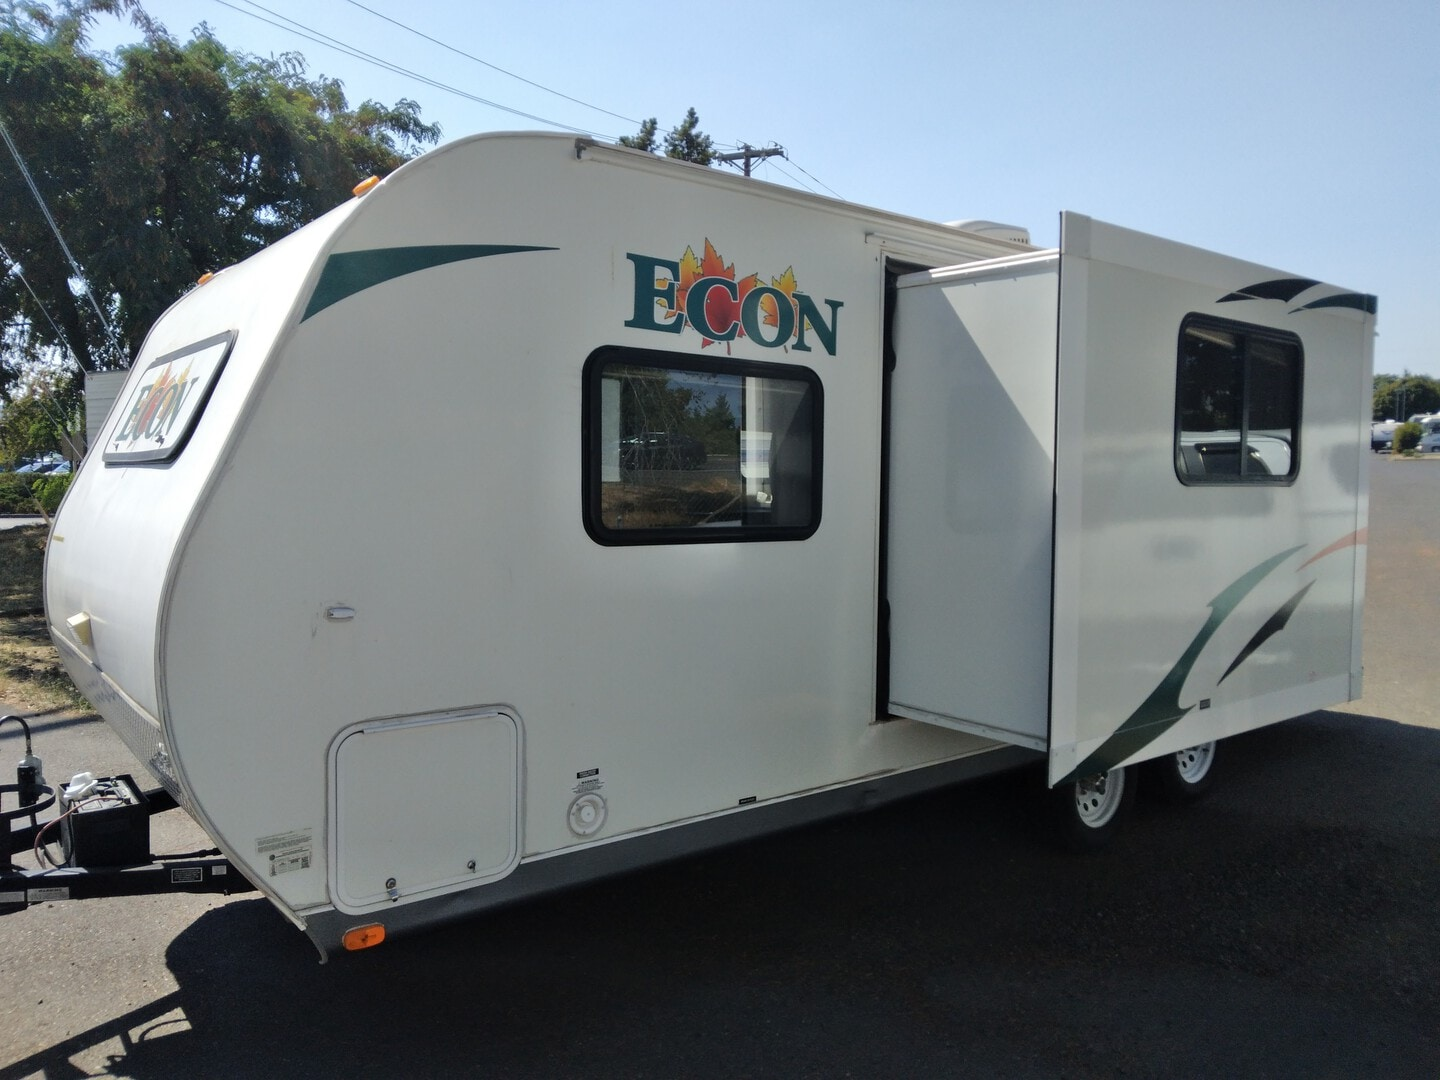 Used, 2014, Pacific Coachworks, ECON, Travel Trailers